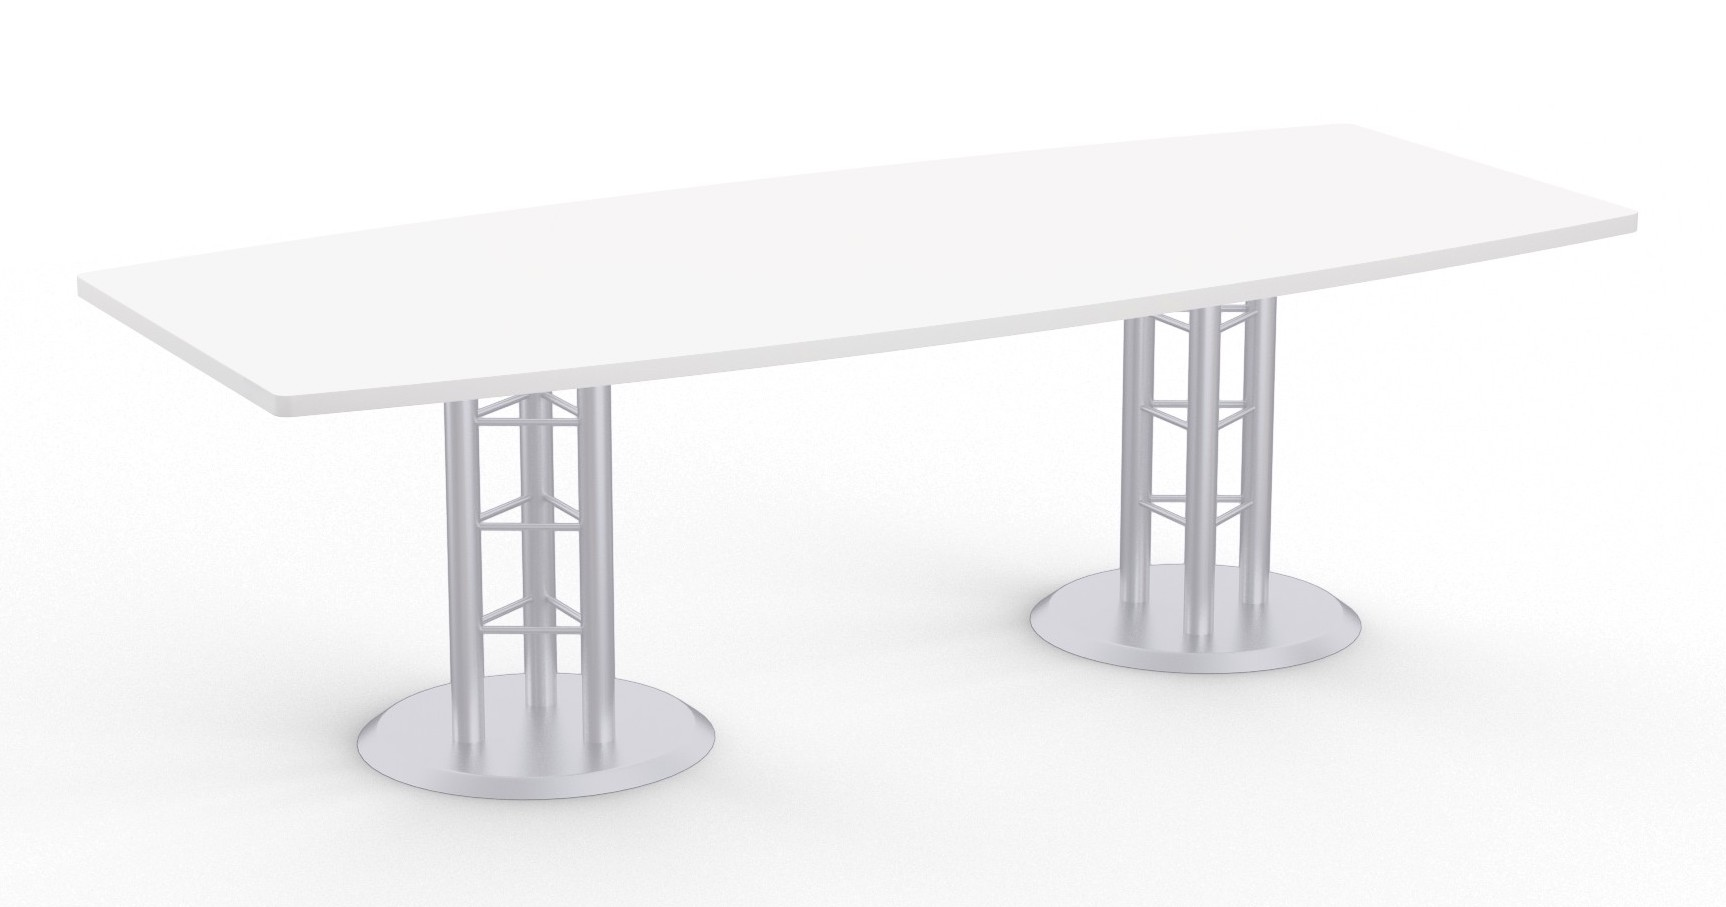 atlantis boat shaped table in designer white